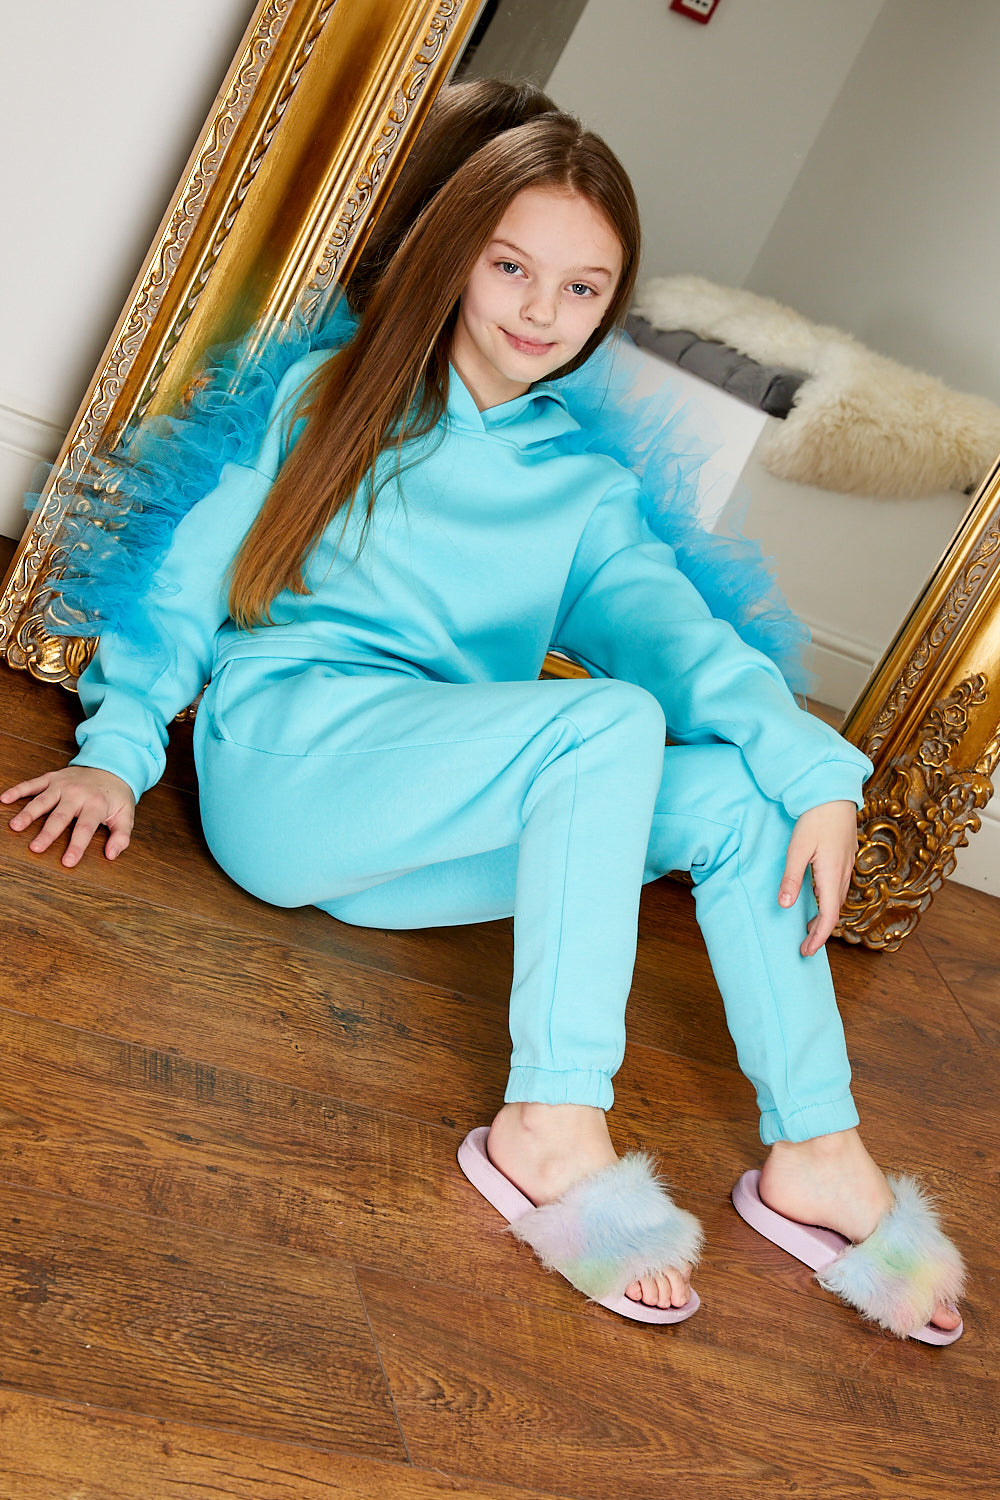 Mini Attire Flossy jog suit AQUA